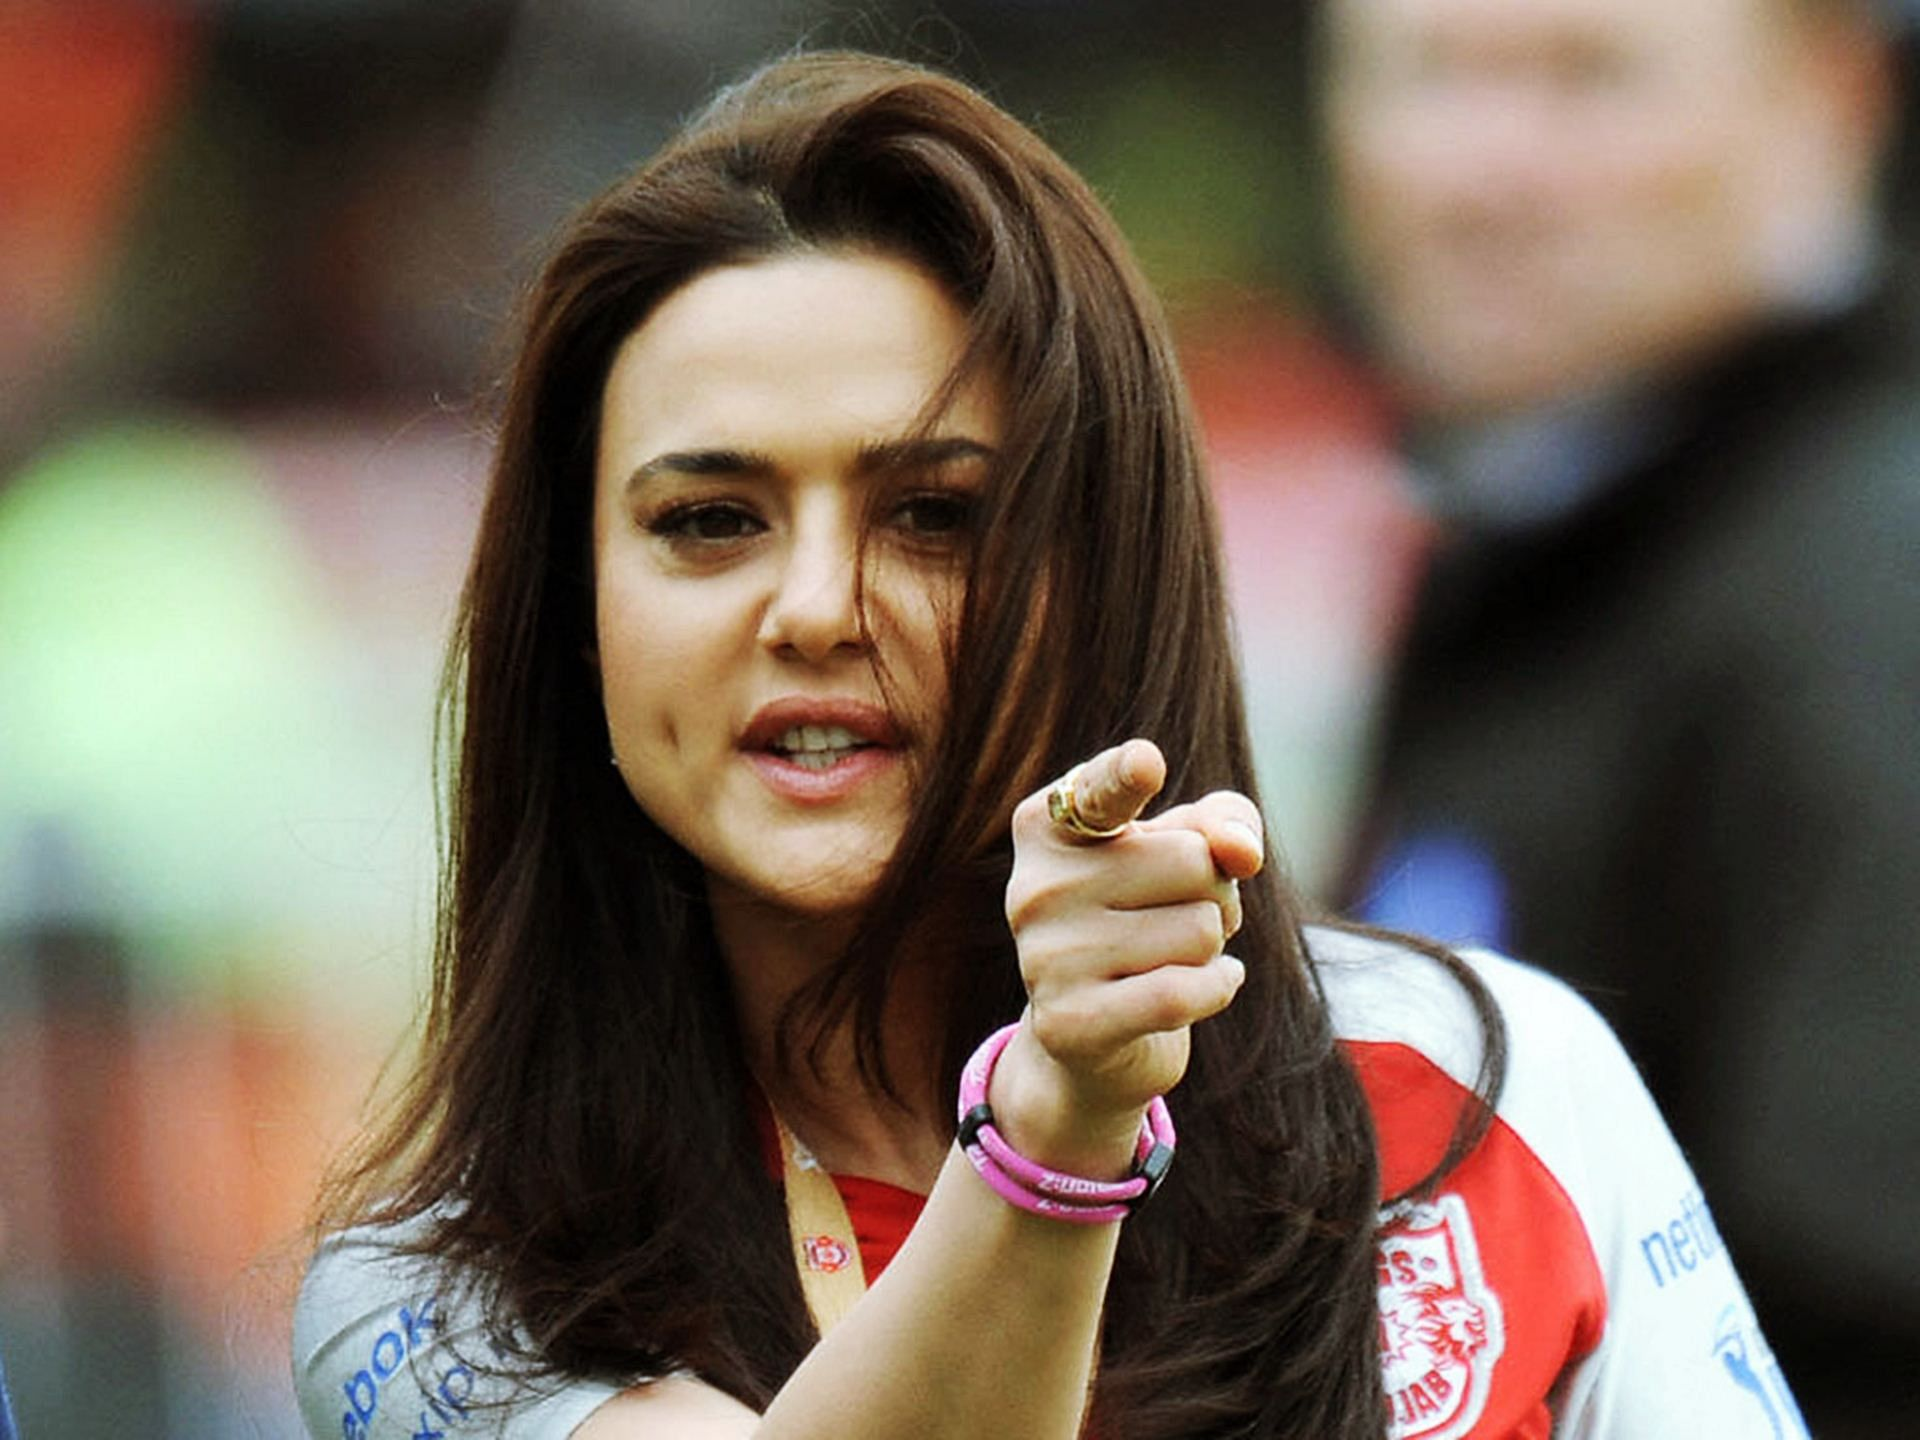 Preity Zinta reiterates her stand on Ness Wadia issue, rubbishes false allegations